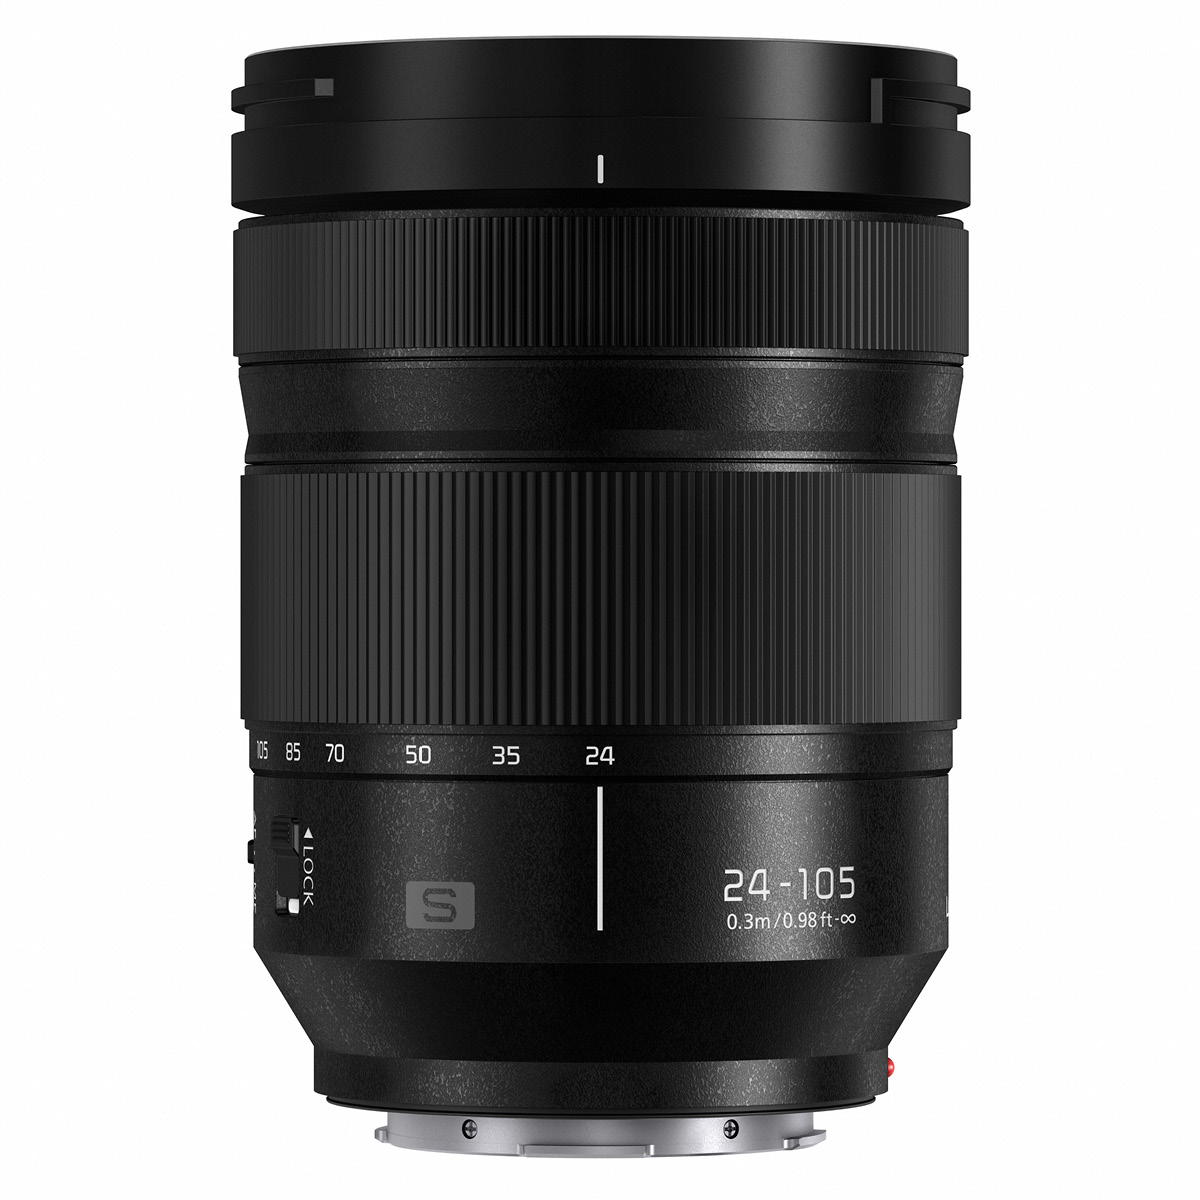 Panasonic 24-105 mm 1:4,0 S OIS